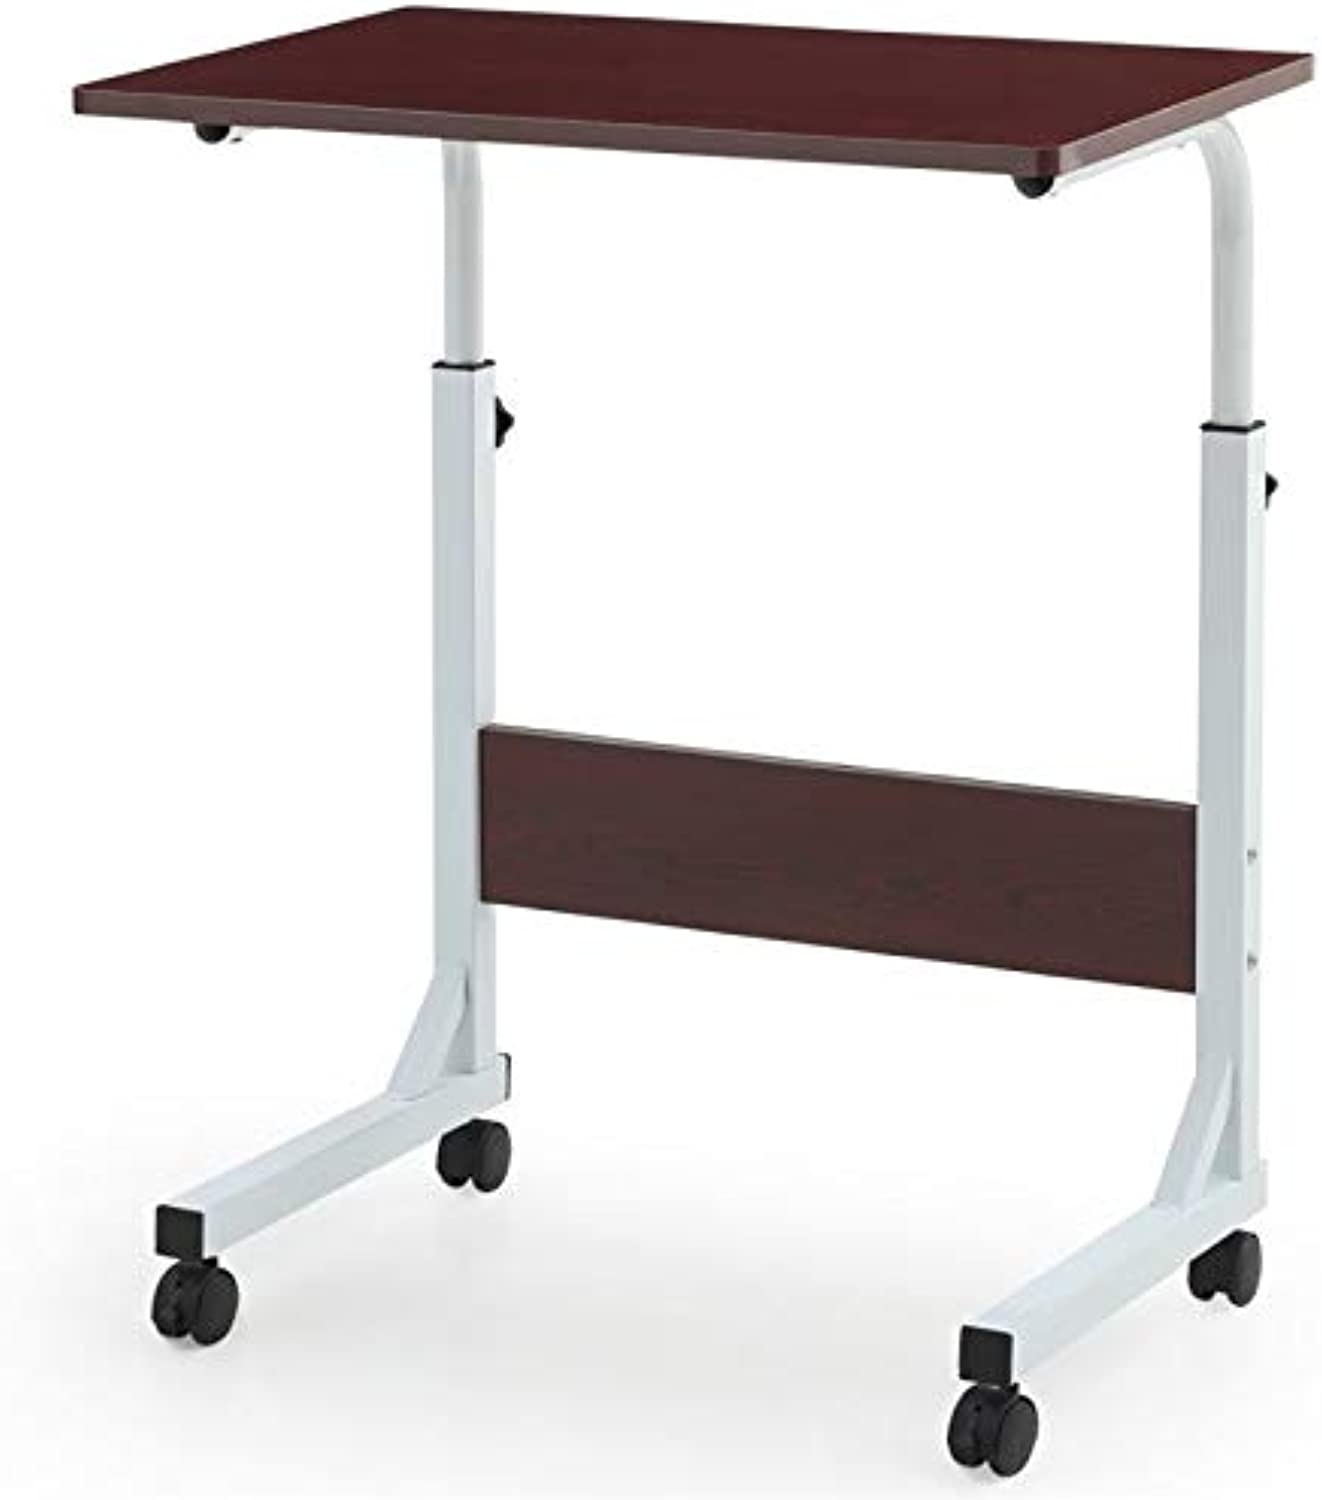 Pemberly Row Adjustable Height Laptop Desk in Mahogany